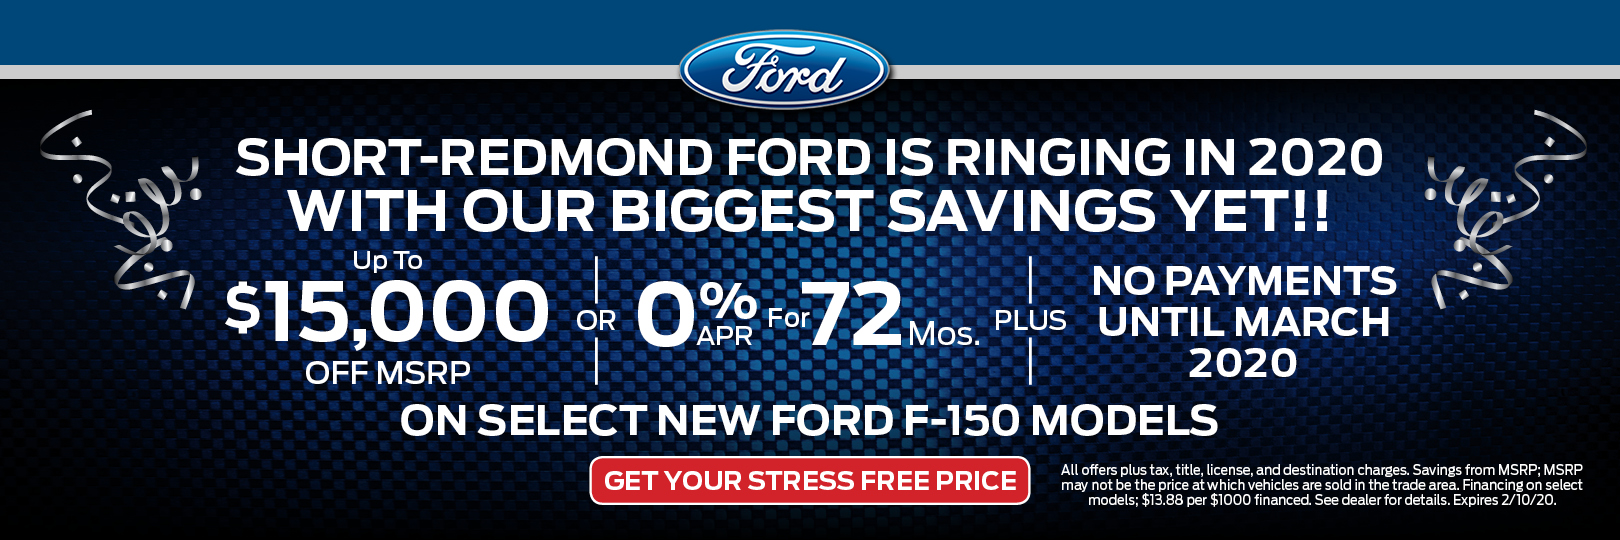 Up to $15,000 Off MSRP OR 0% APR x 72 Mos. PLUS No Payments Until March 2020 on Select New Ford F-0150 Models